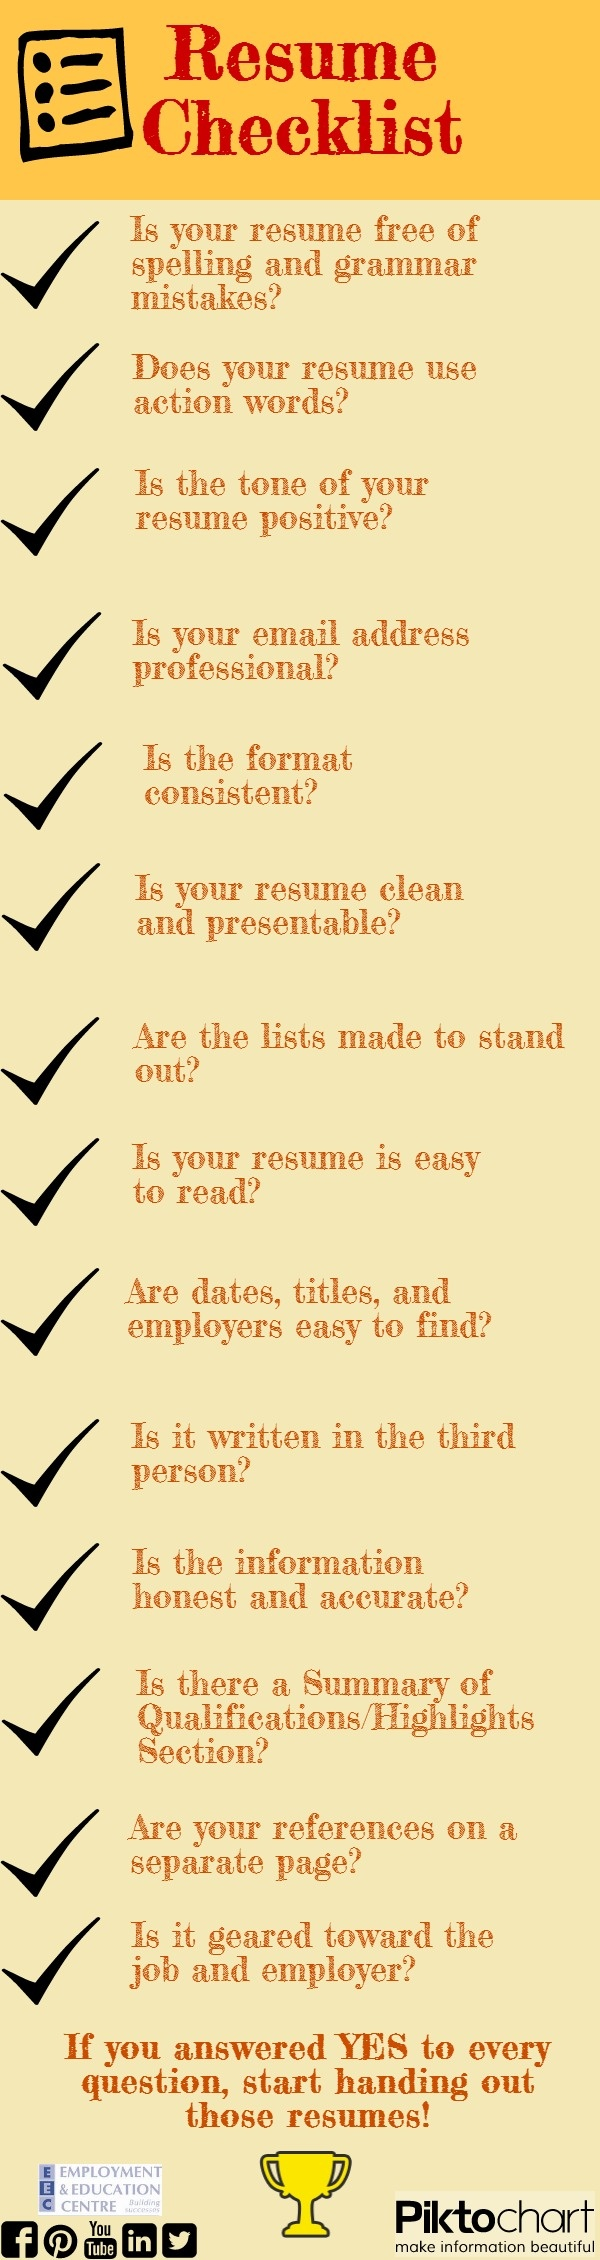 Jobseekers [Resume U0026 CV] Check Out This List Before You Hand Out Your  Resume!